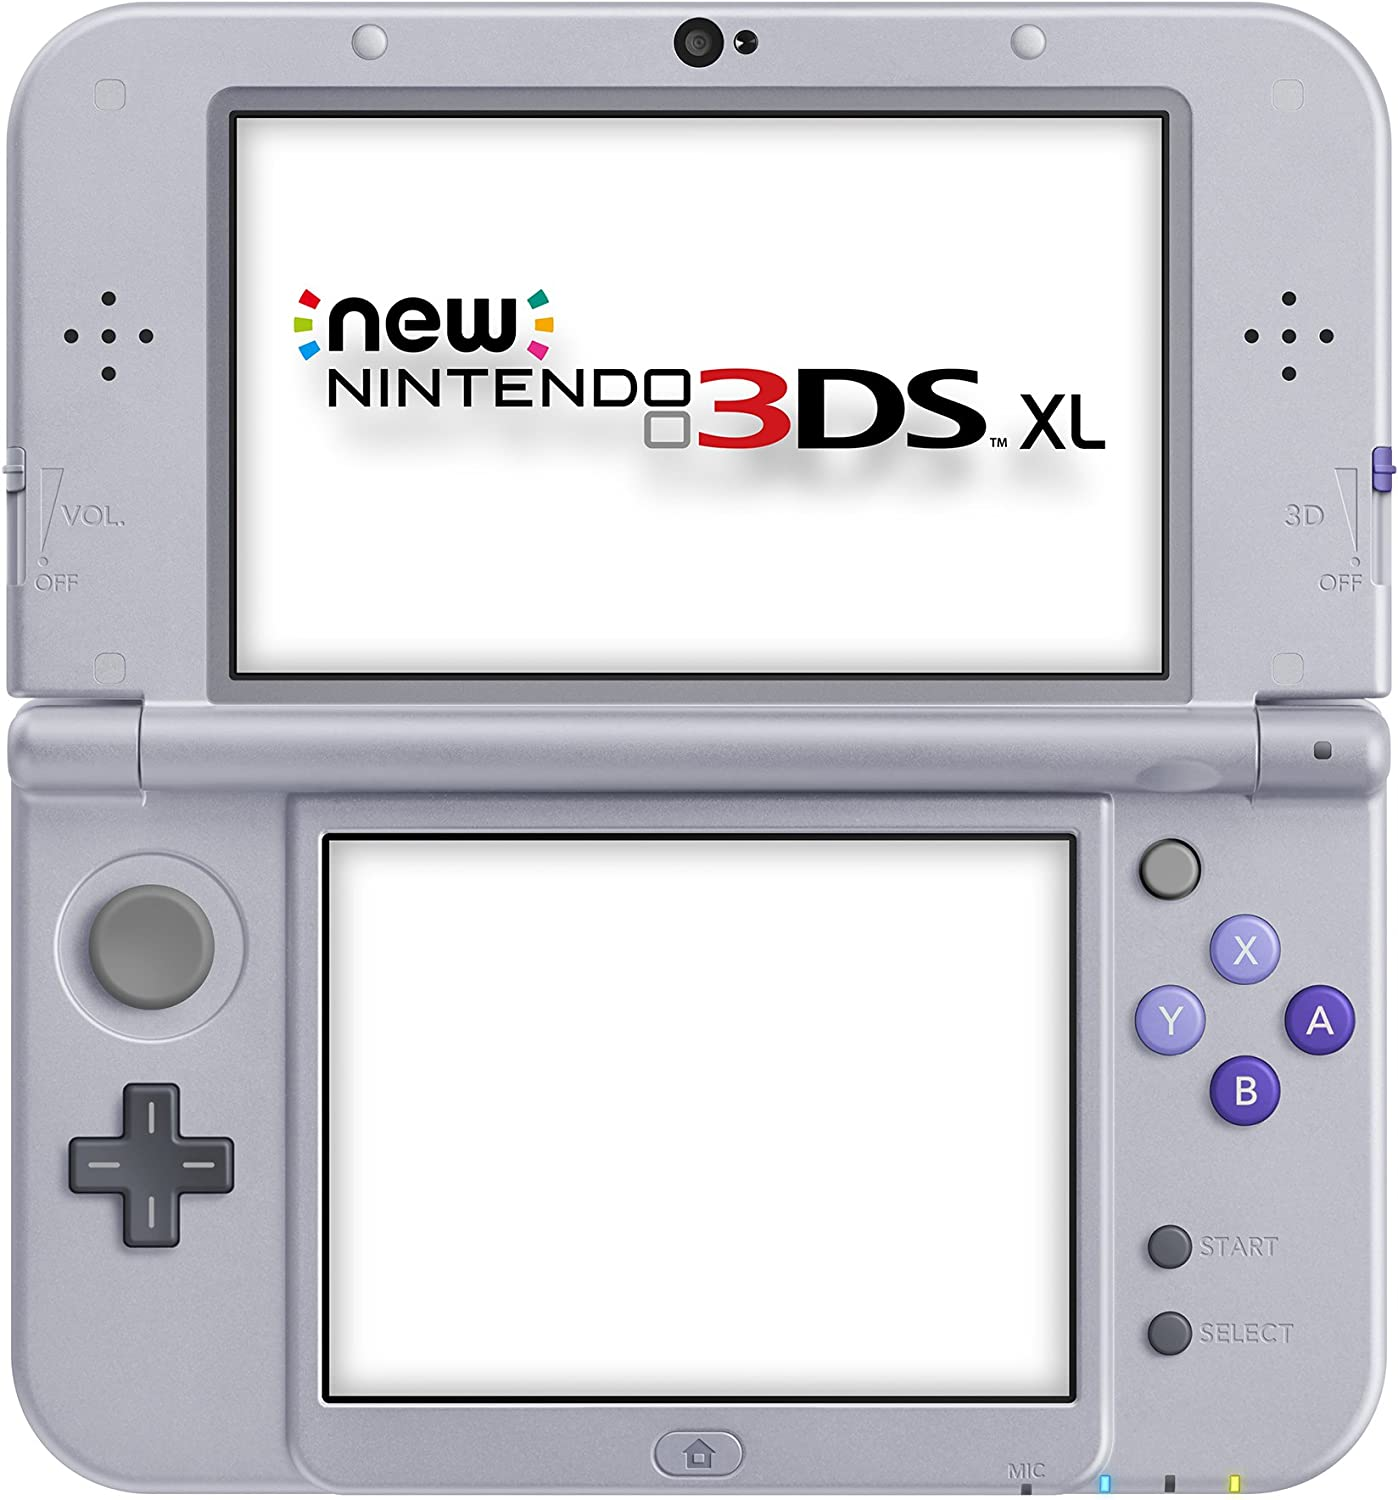 installing emulators on 3ds